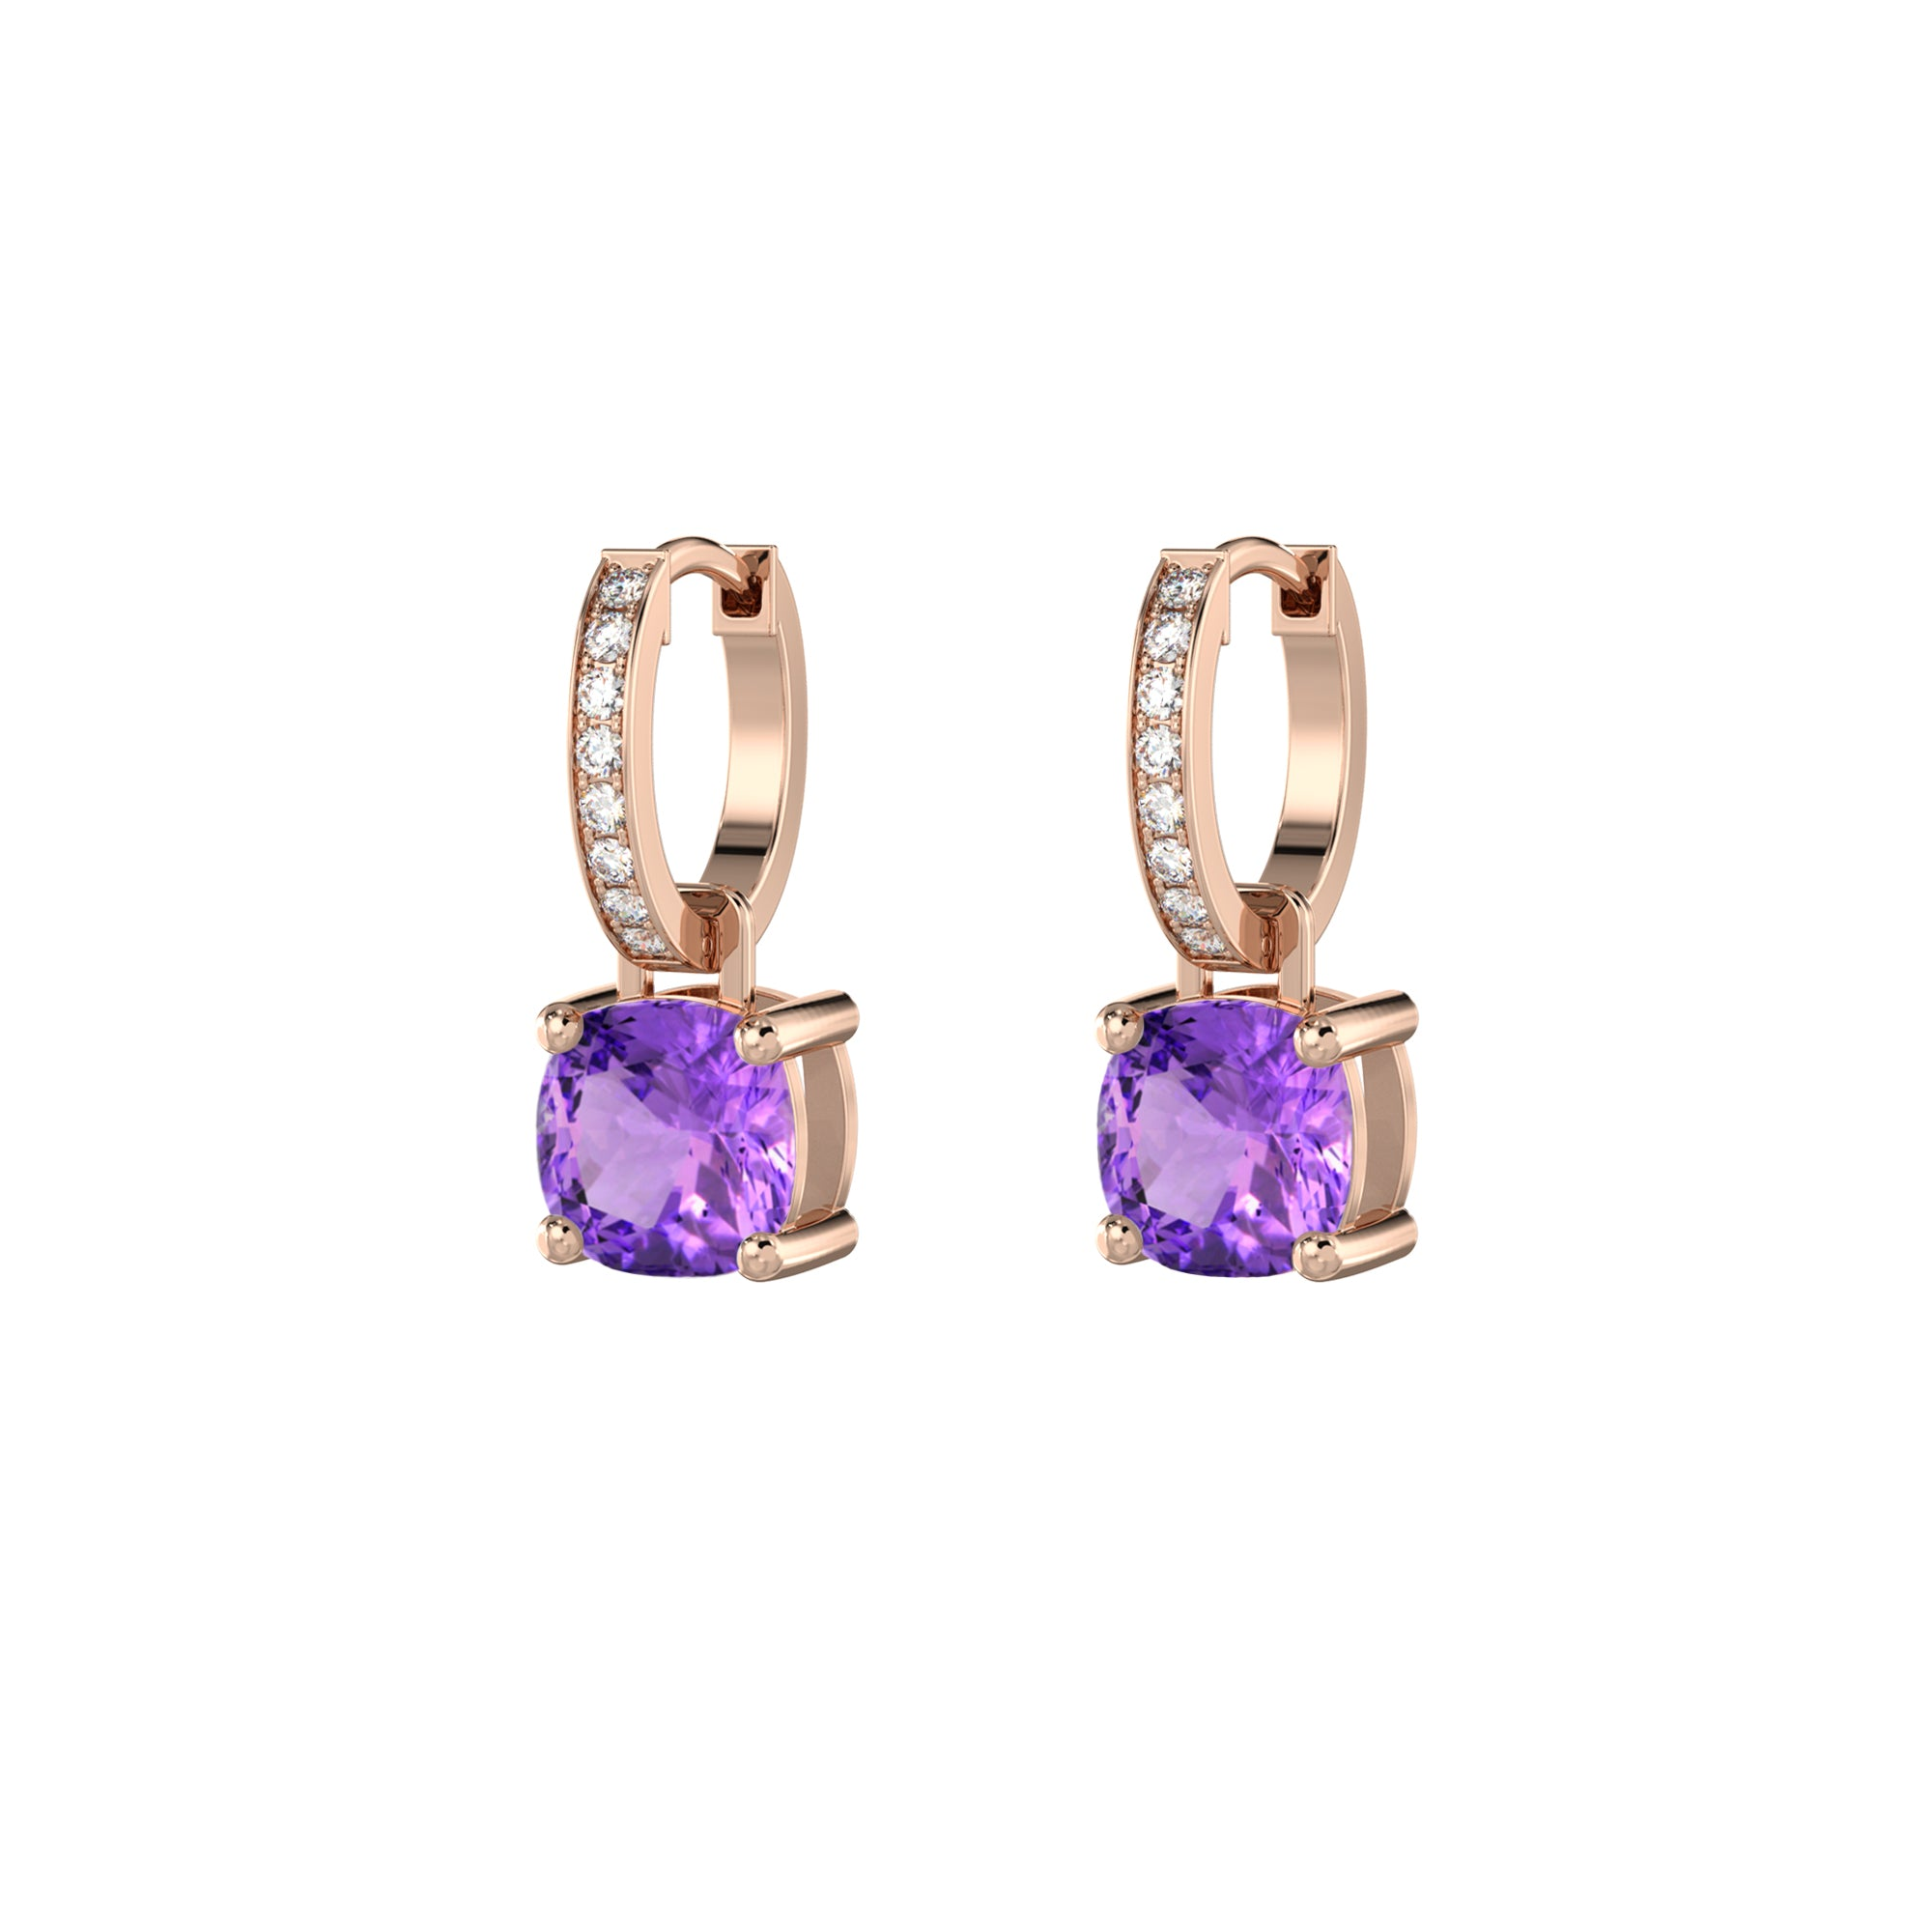 925 Silver Luxe Series Earrings Charms - Wylie (Amethyst) - Rose Gold Plated